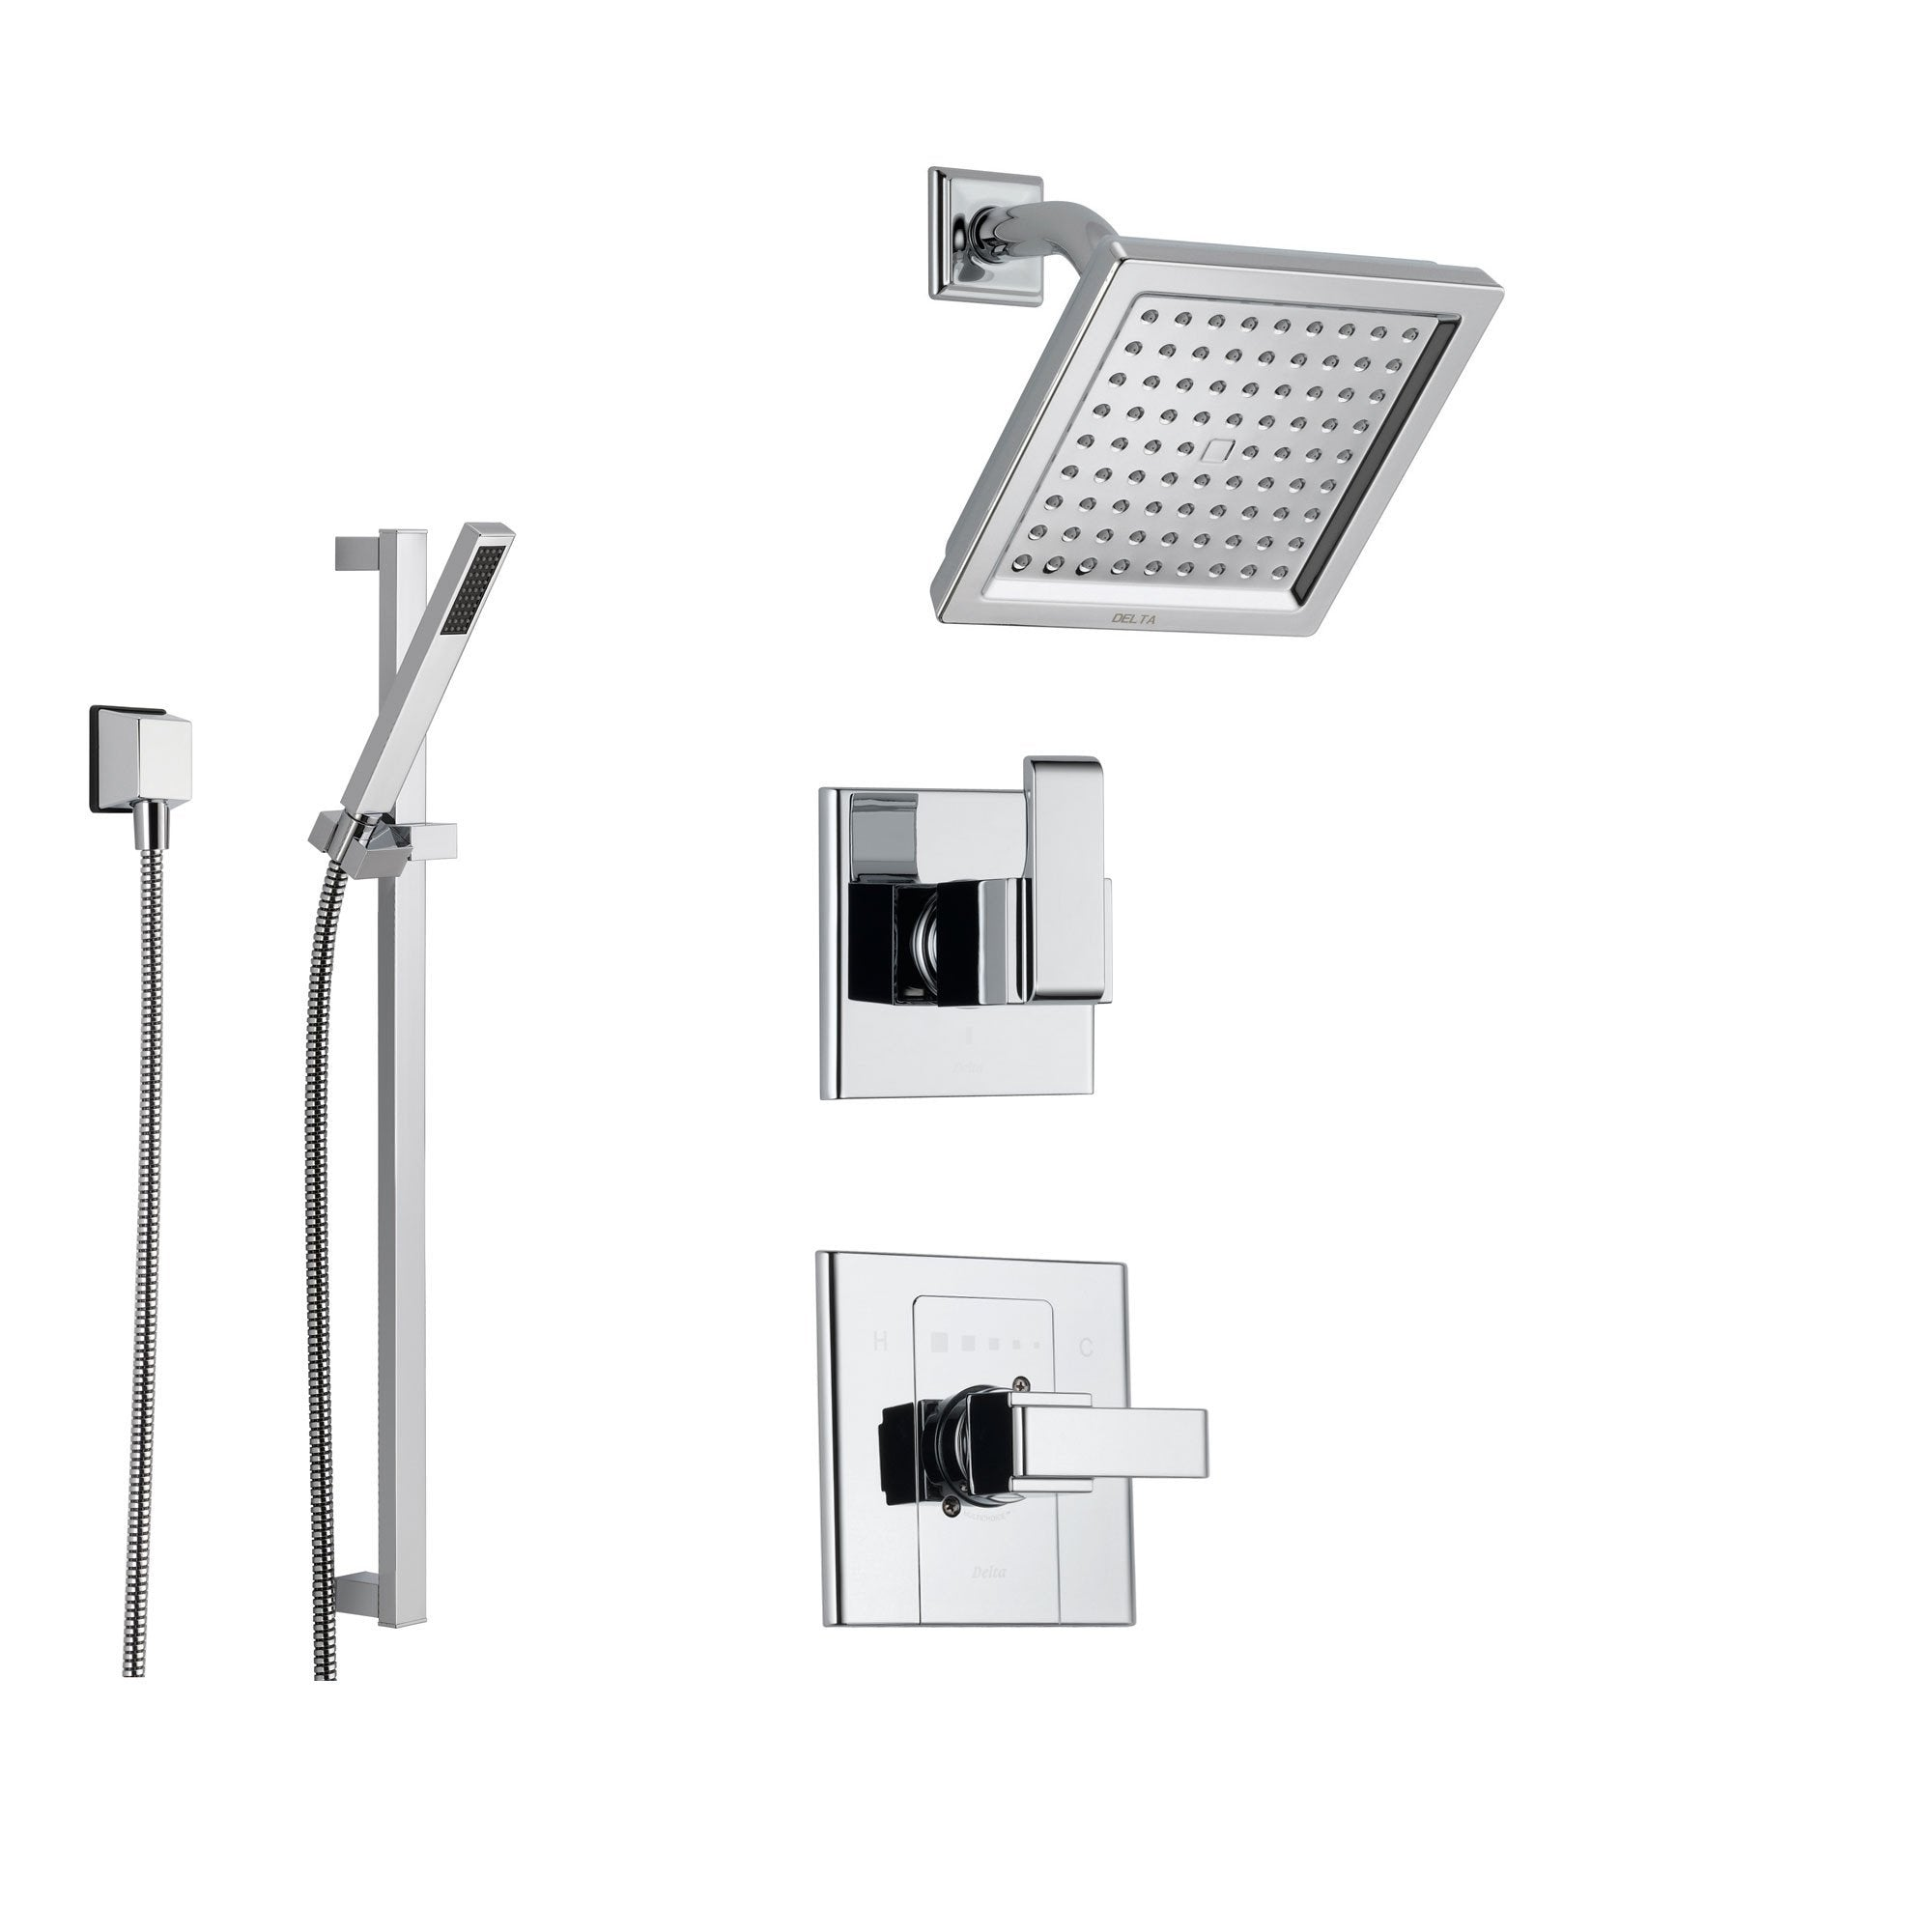 Merveilleux Delta Arzo Chrome Shower System With Normal Shower Handle, 3 Setting  Diverter, Modern